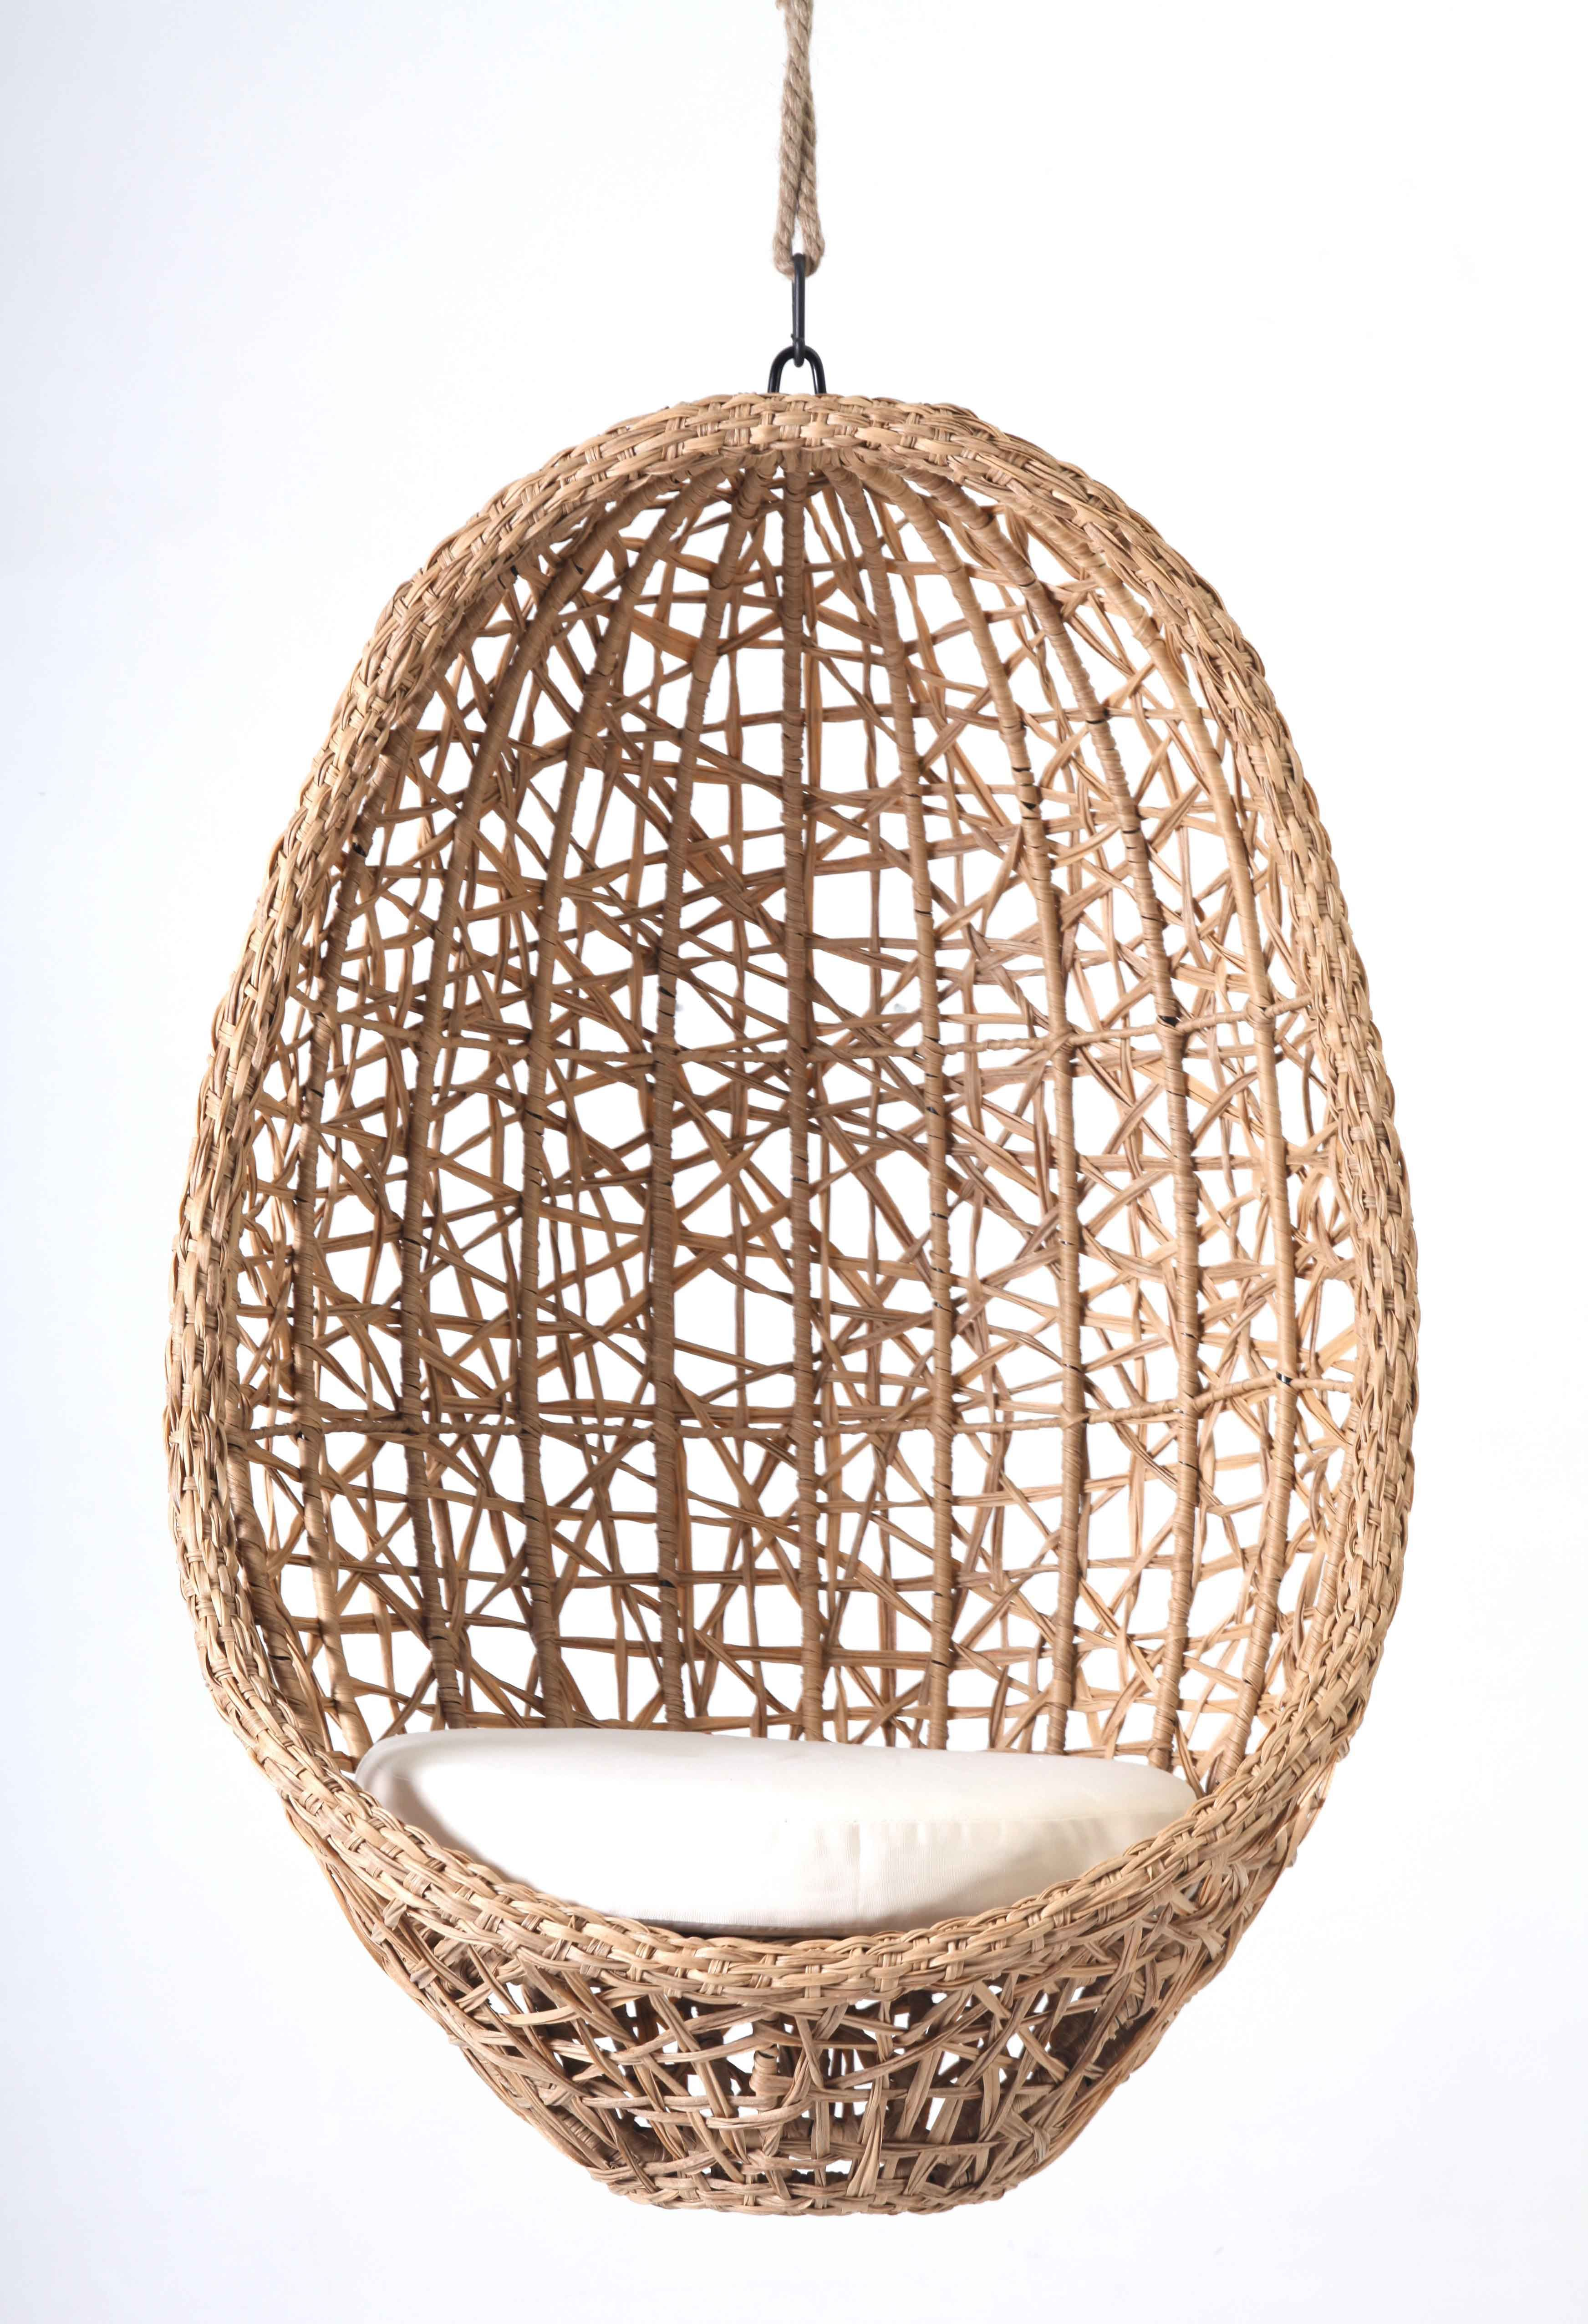 Egg Chair Perth The New Sixties Hanging Egg Chair Has Borrowed All Of The